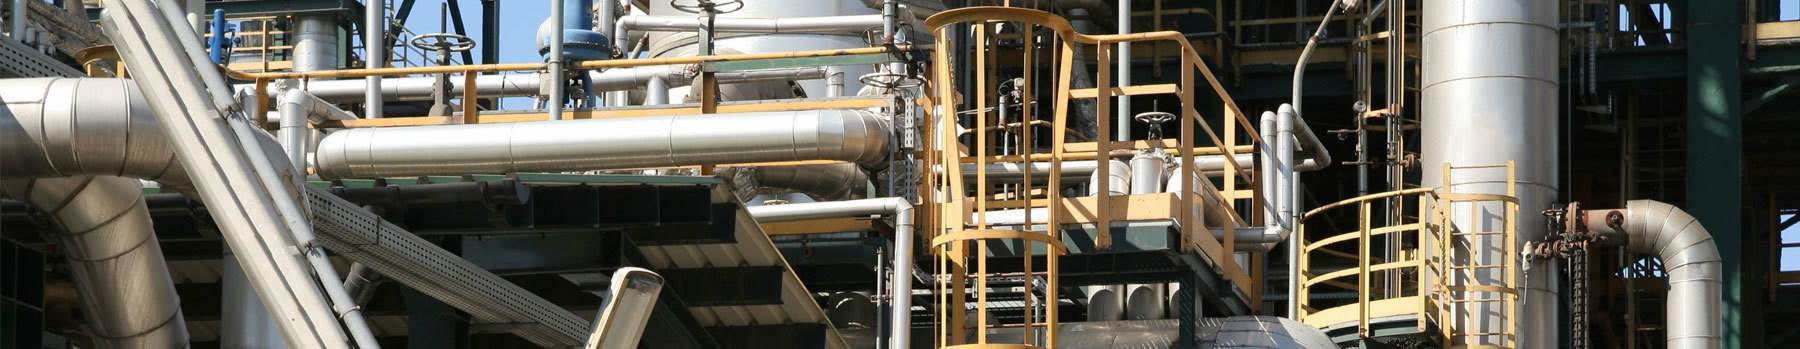 Pipe Stress and Vessel Analysis -Vessel and Pipe Design and Analysis Software